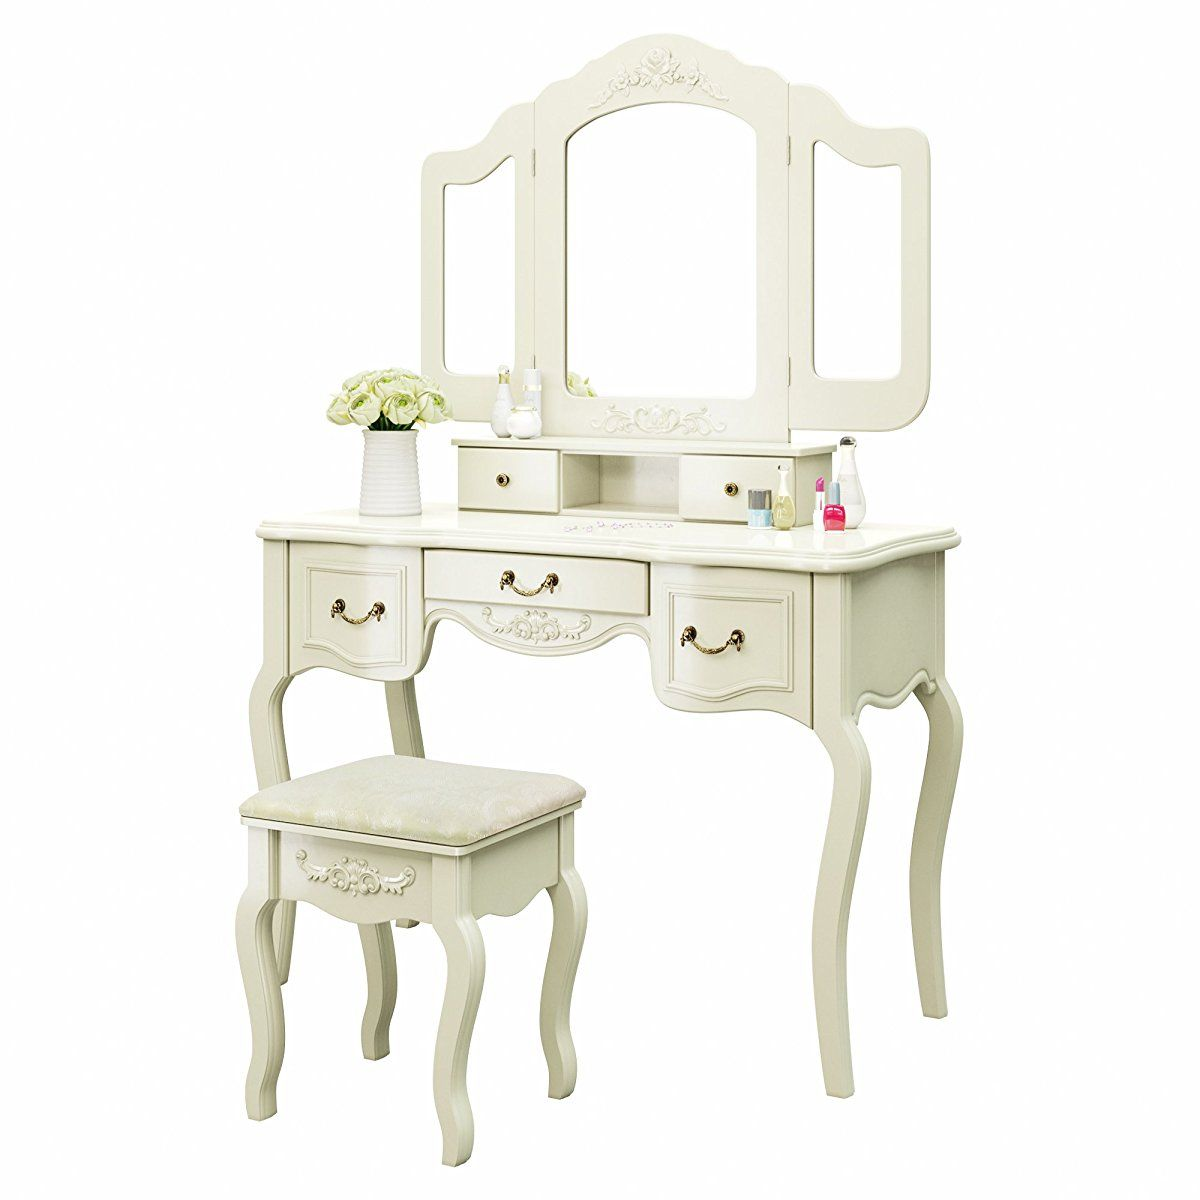 Tribesigns French Vintage Ivory White Vanity Dressing Table Set Makeup Desk With Stool Mirror Bedroom Vintage Stool White Dresser Vanity [ 1200 x 1200 Pixel ]